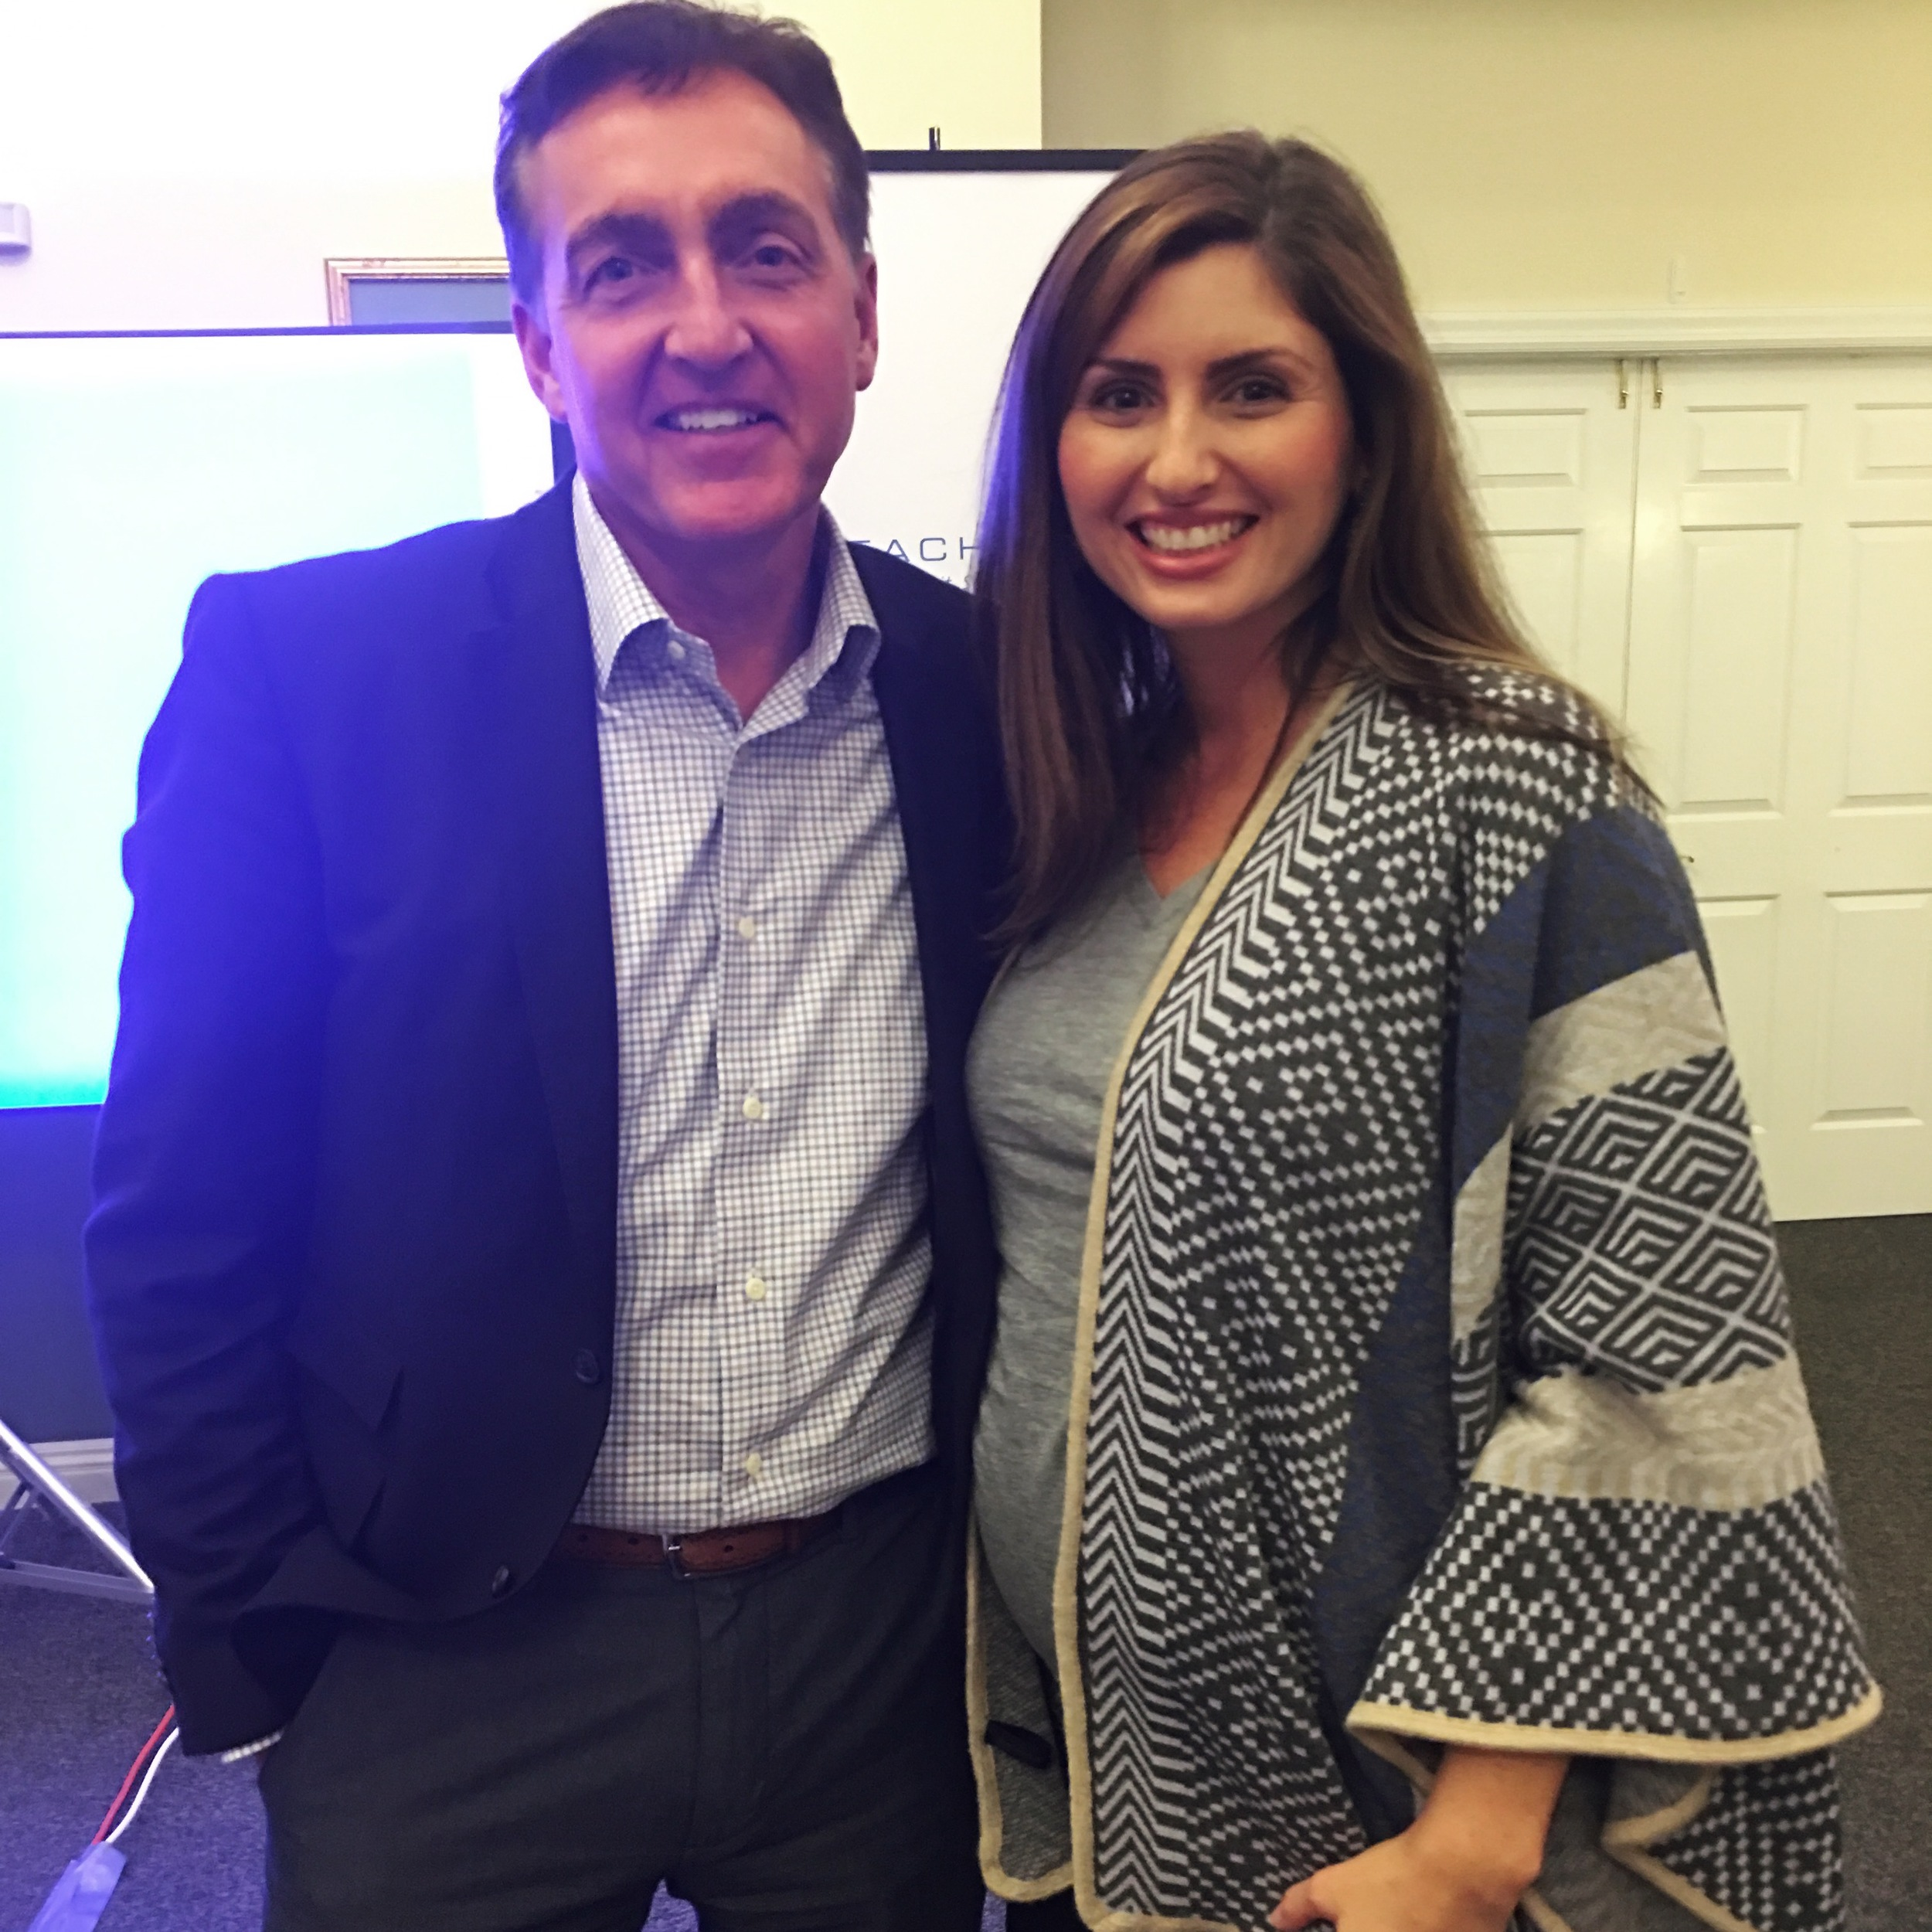 attended an exclusive training with the executive vice president of global sales